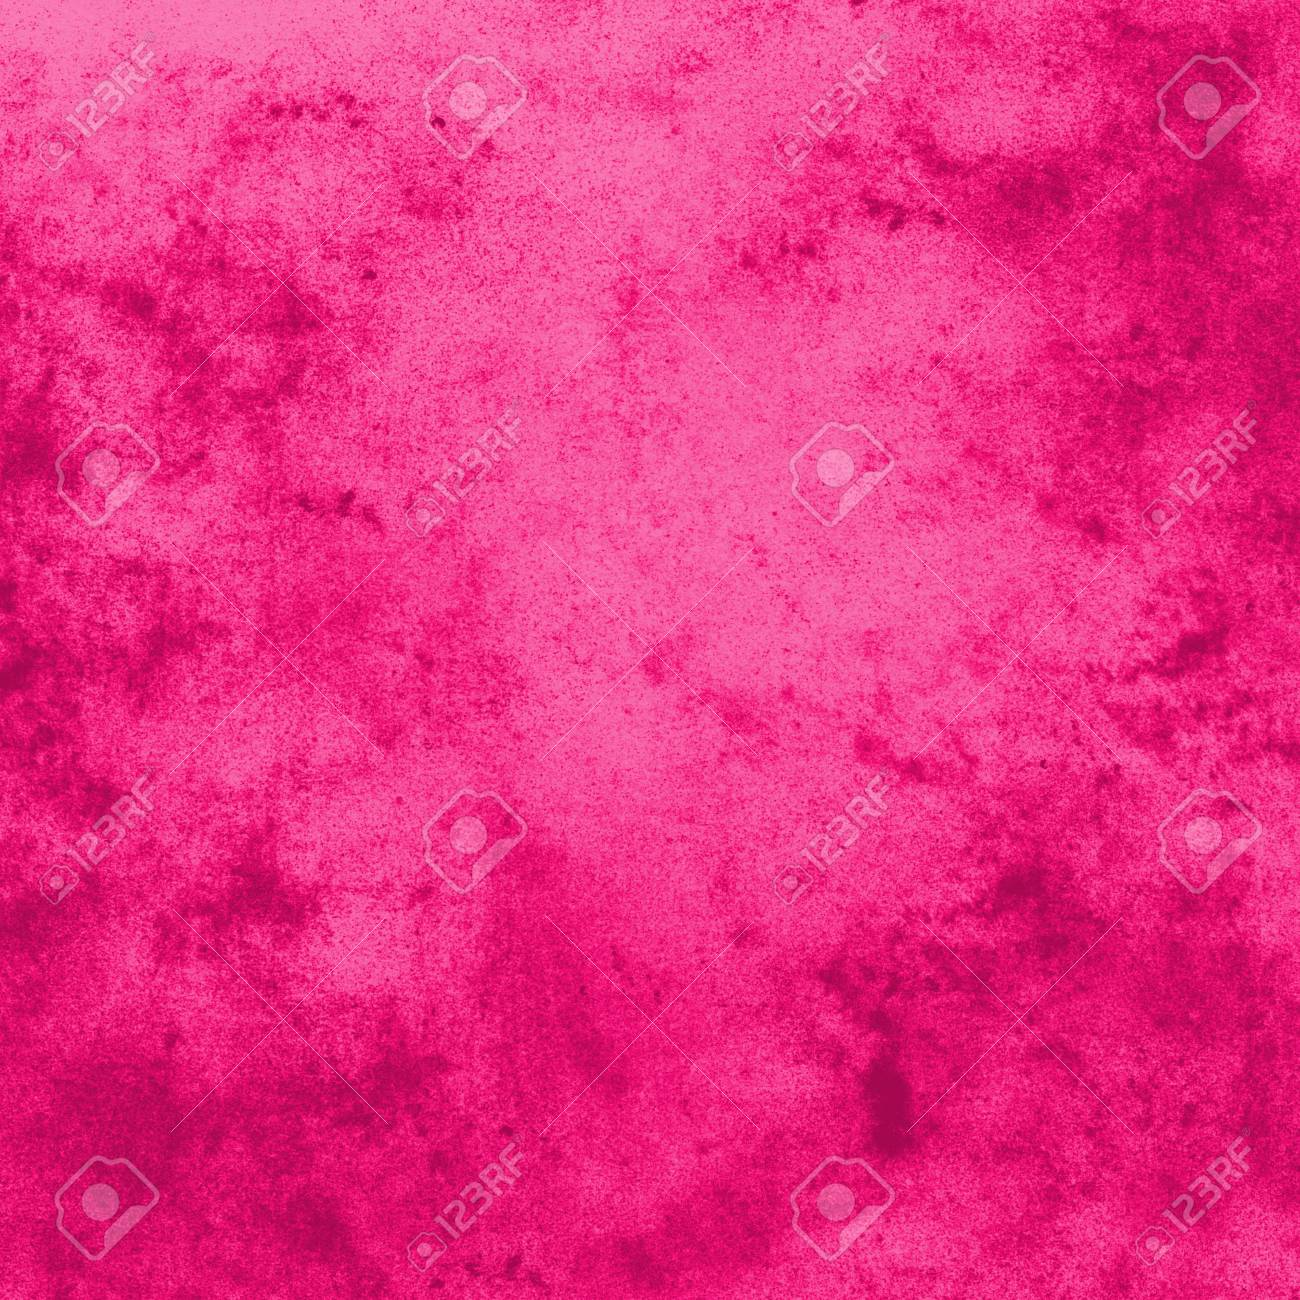 Grunge Background In Pink And White Color Abstract Pink 1300x1300